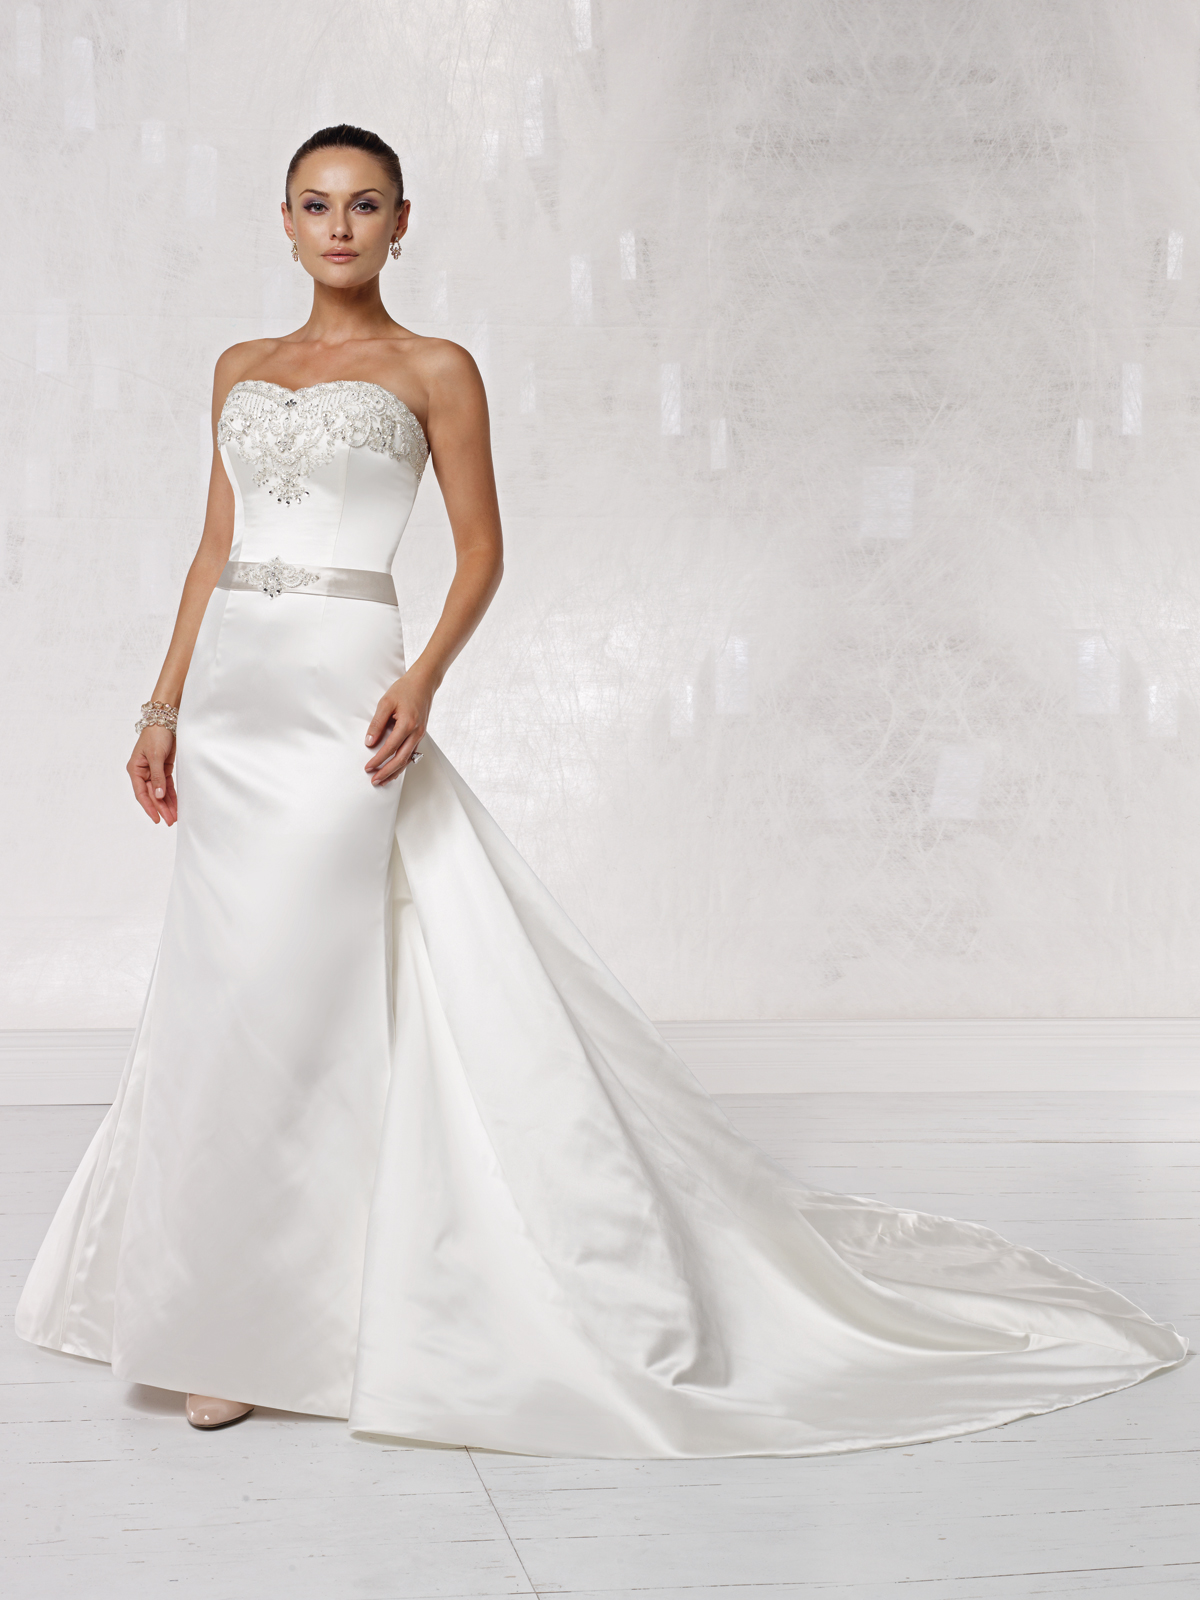 Launched For The Spring 2011 Season New Kathy Ireland Weddings By 2be Designs Include Wedding Dresses Bridesmaid And Mother Of Bride